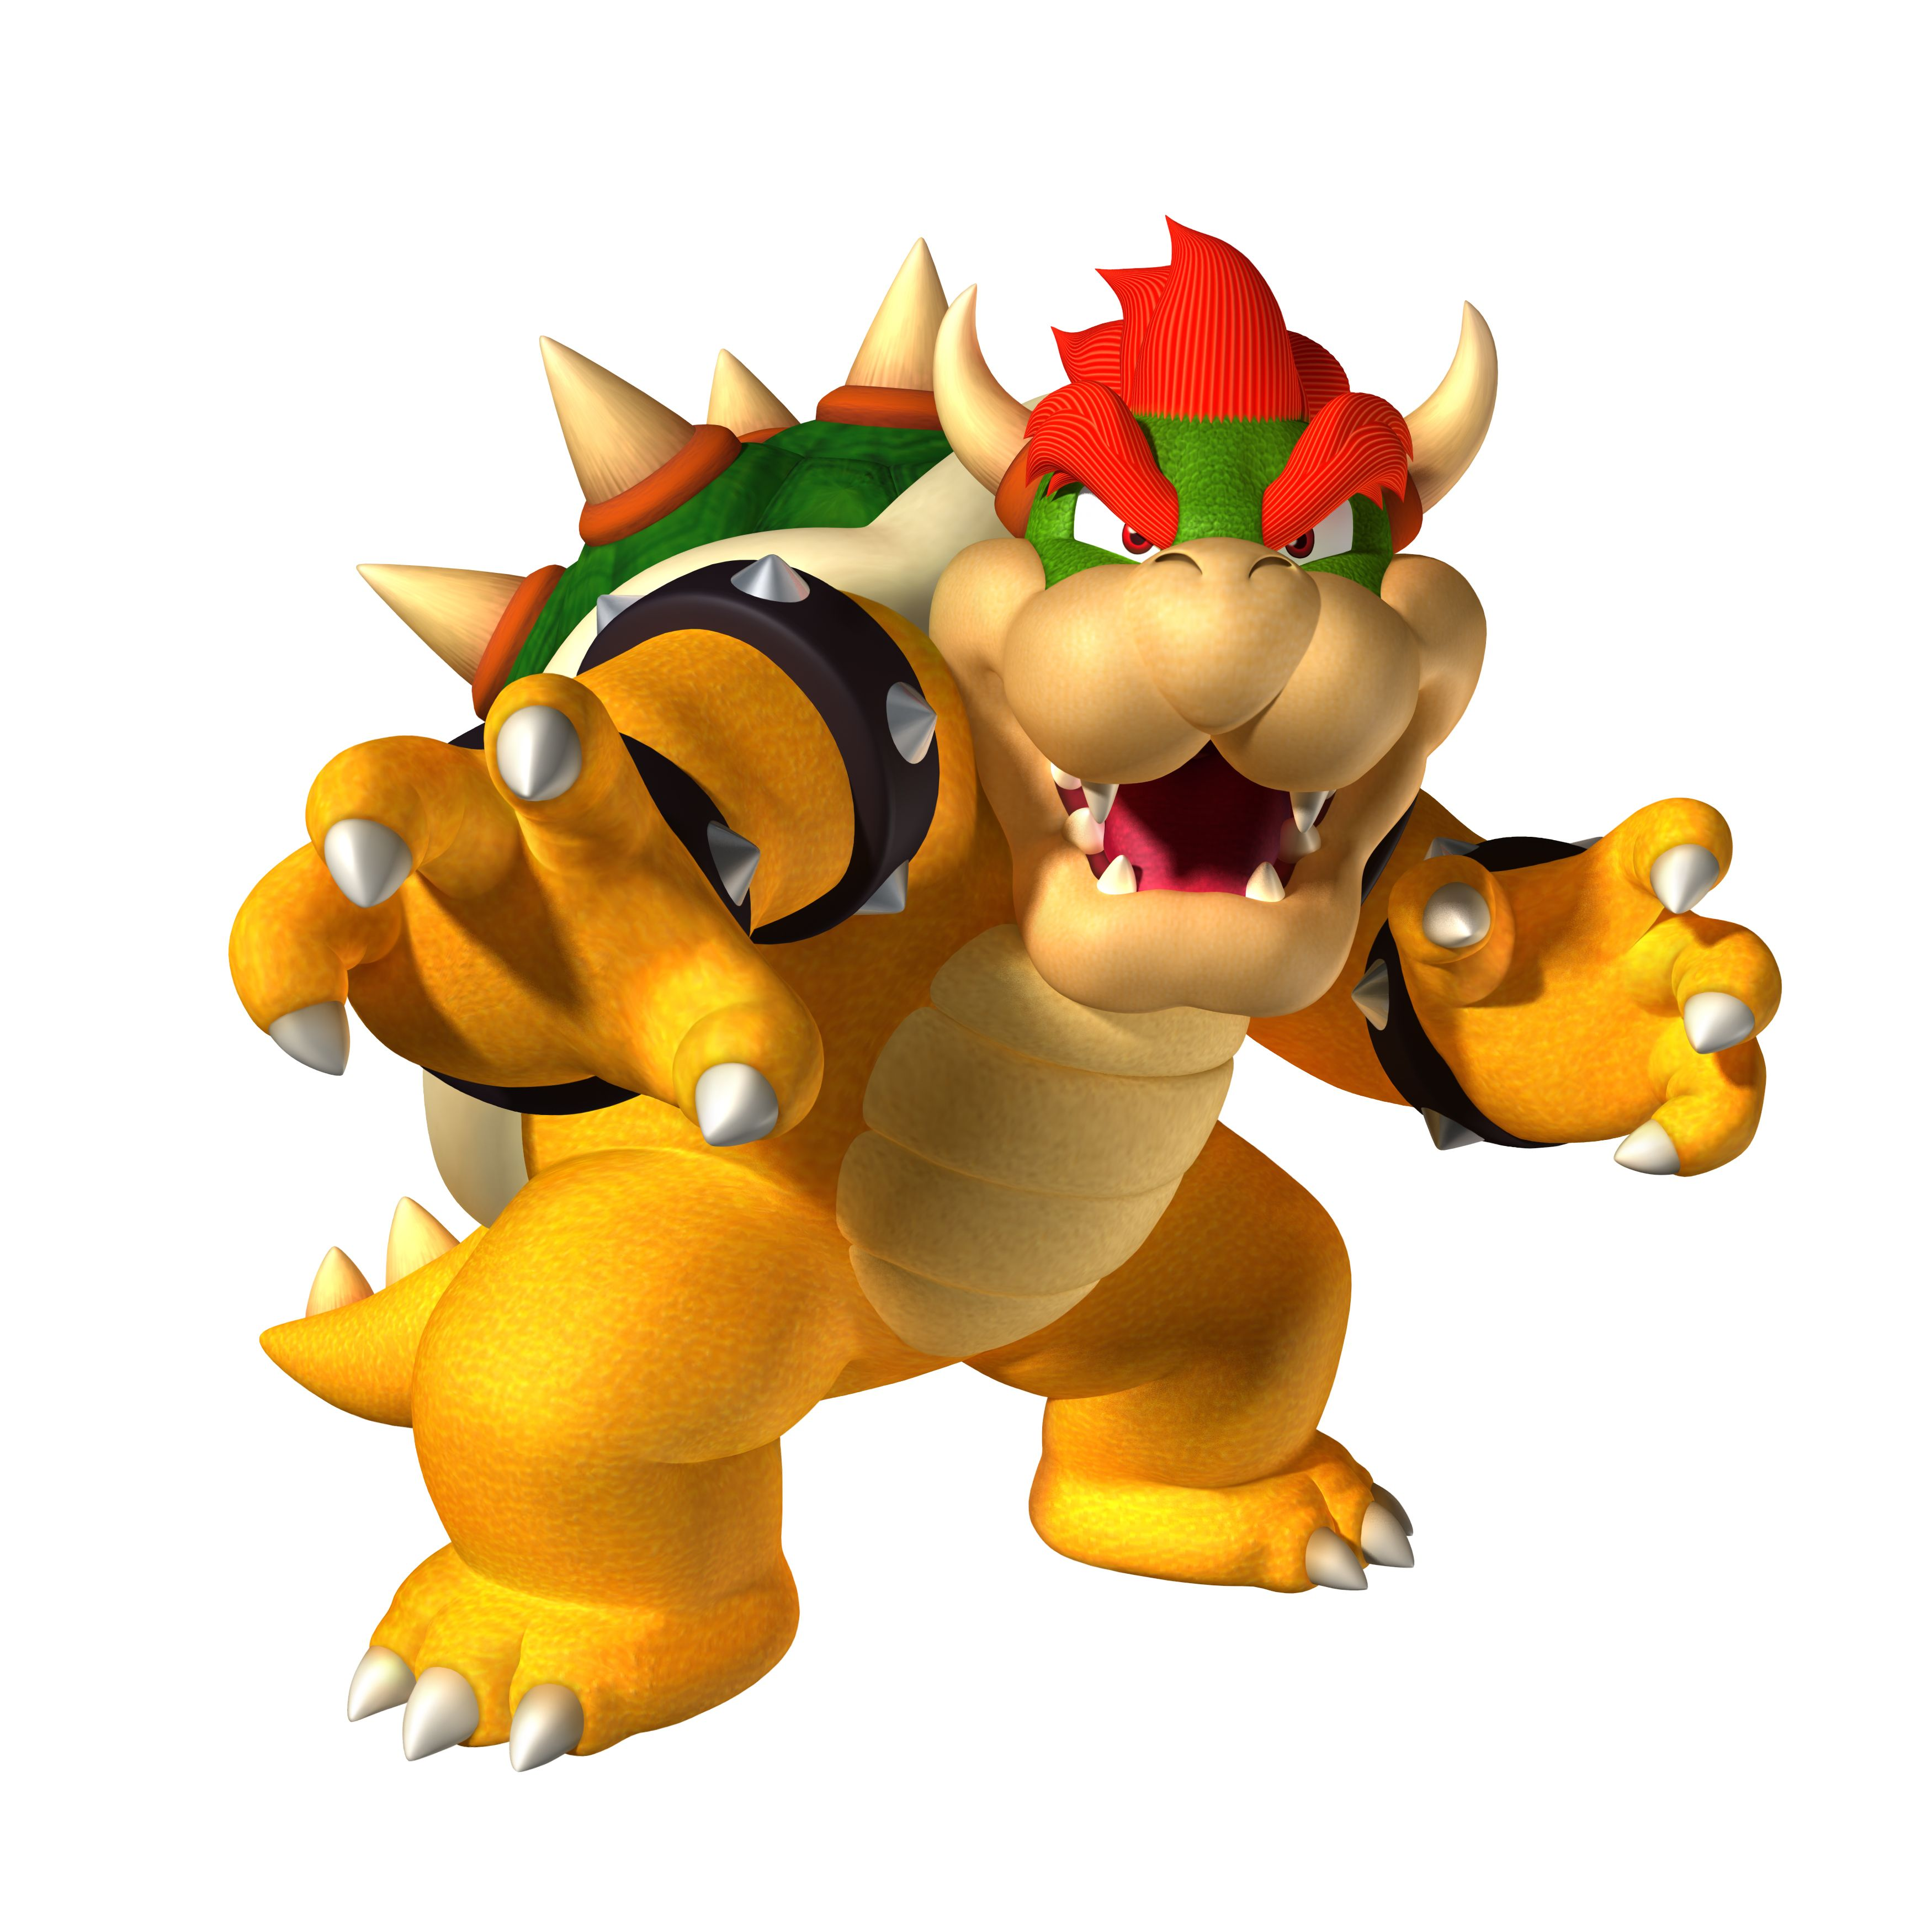 bowser your the bad guy kiddnaping peach its your fault stuff to this is king bowser as he appears in new super mario bros he first appeared in super mario bros he is the final boss of the game who mario or luigi